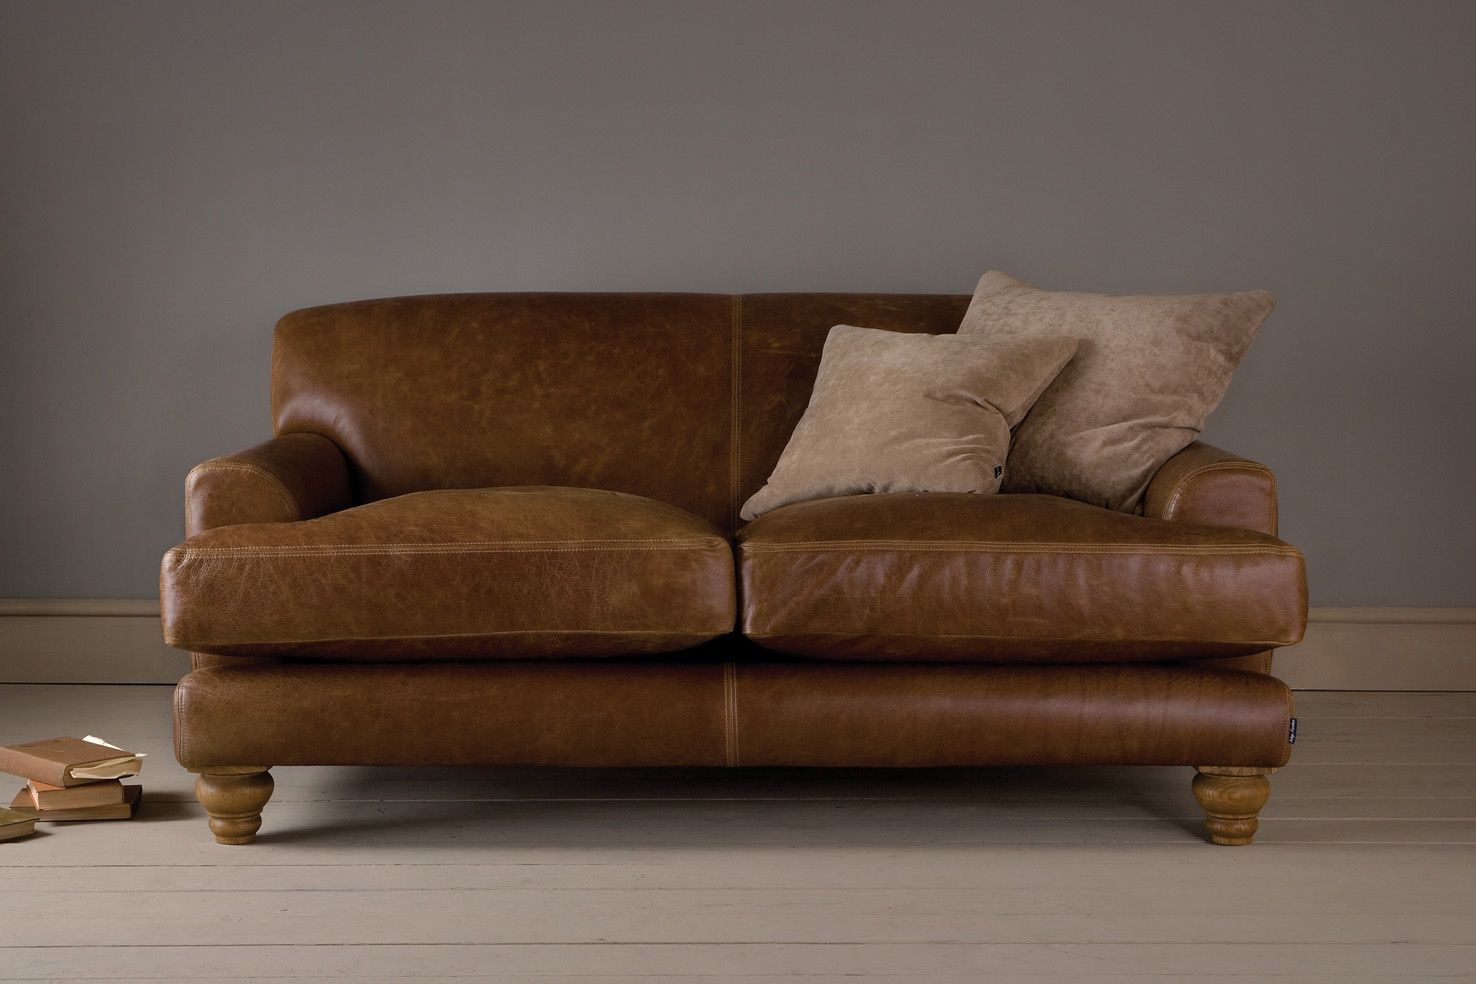 The English Low Arm Leather Sofa Best Leather Sofa Vintage Leather Sofa Leather Sofa